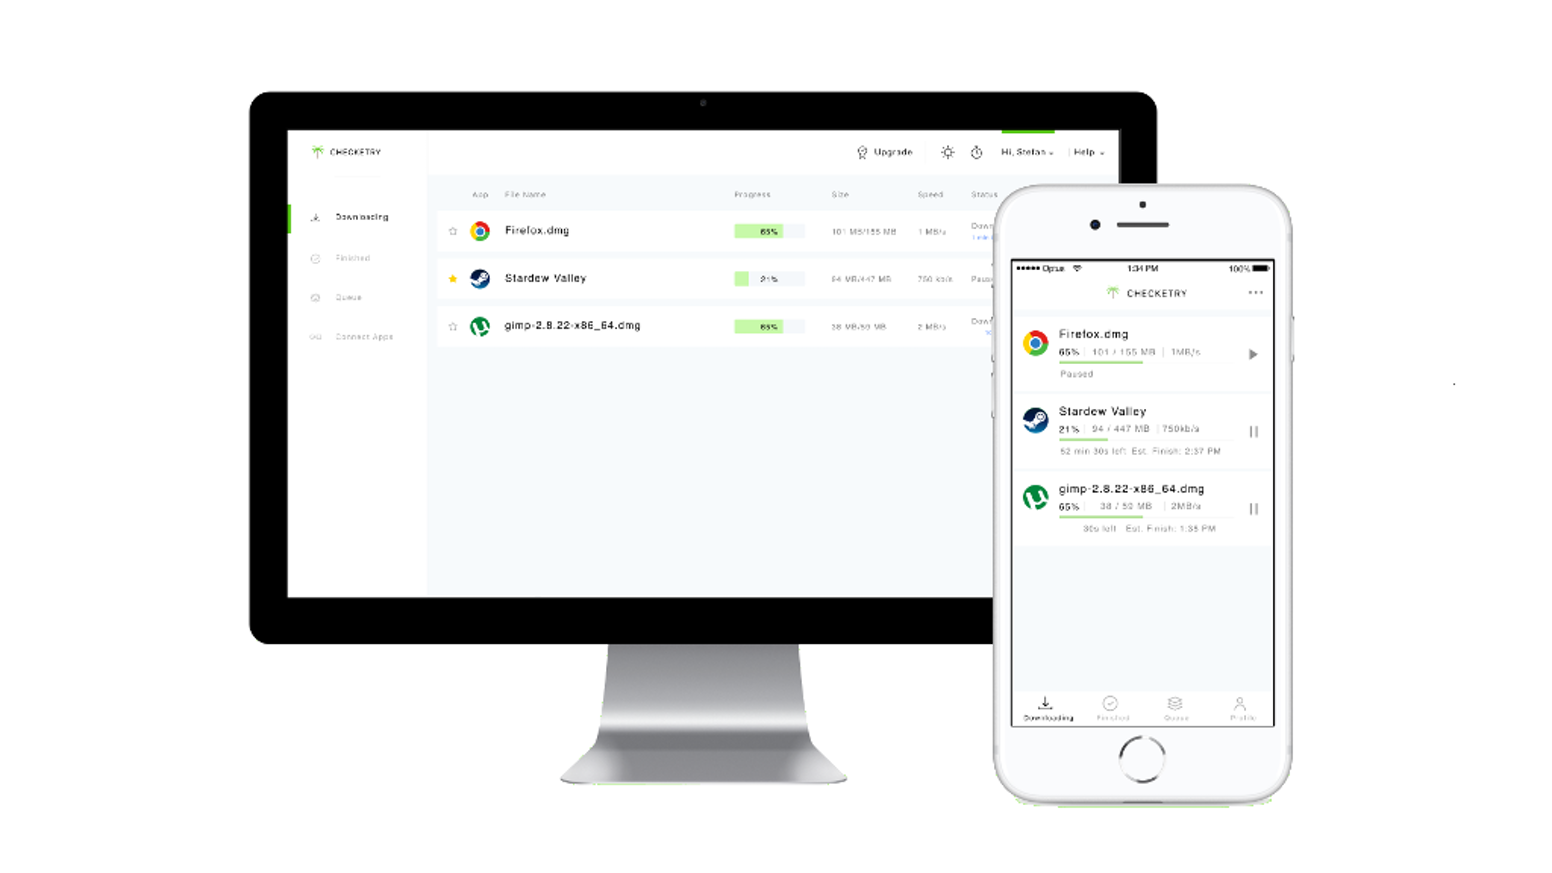 Checketry is a download manager that lets users track download progress from one device on another.